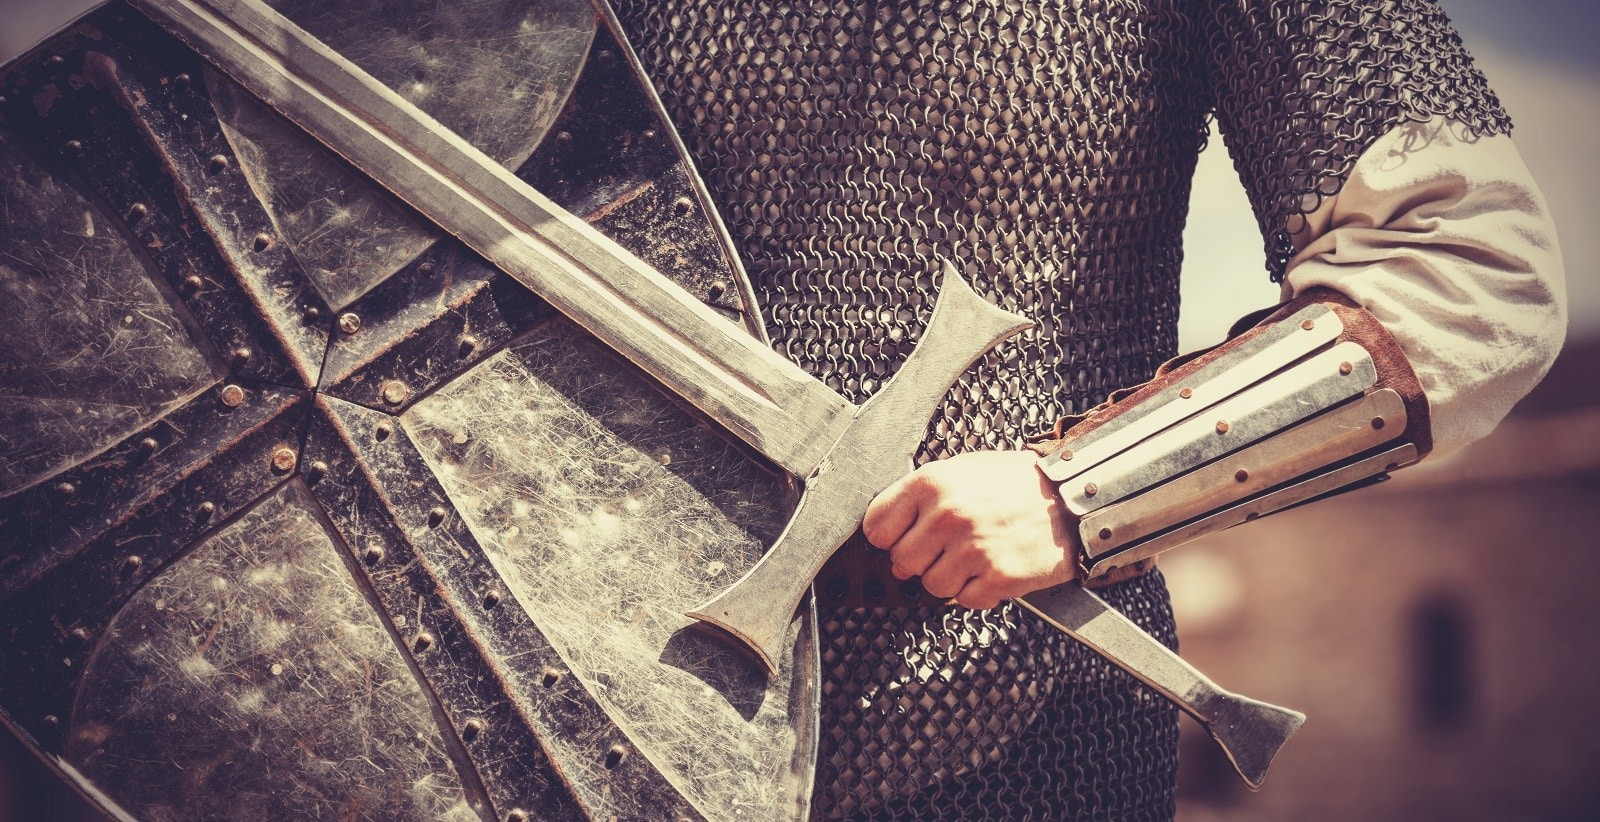 Dawn your armor, raise your shield, unsheathe your sword as a knight in defense of Christ